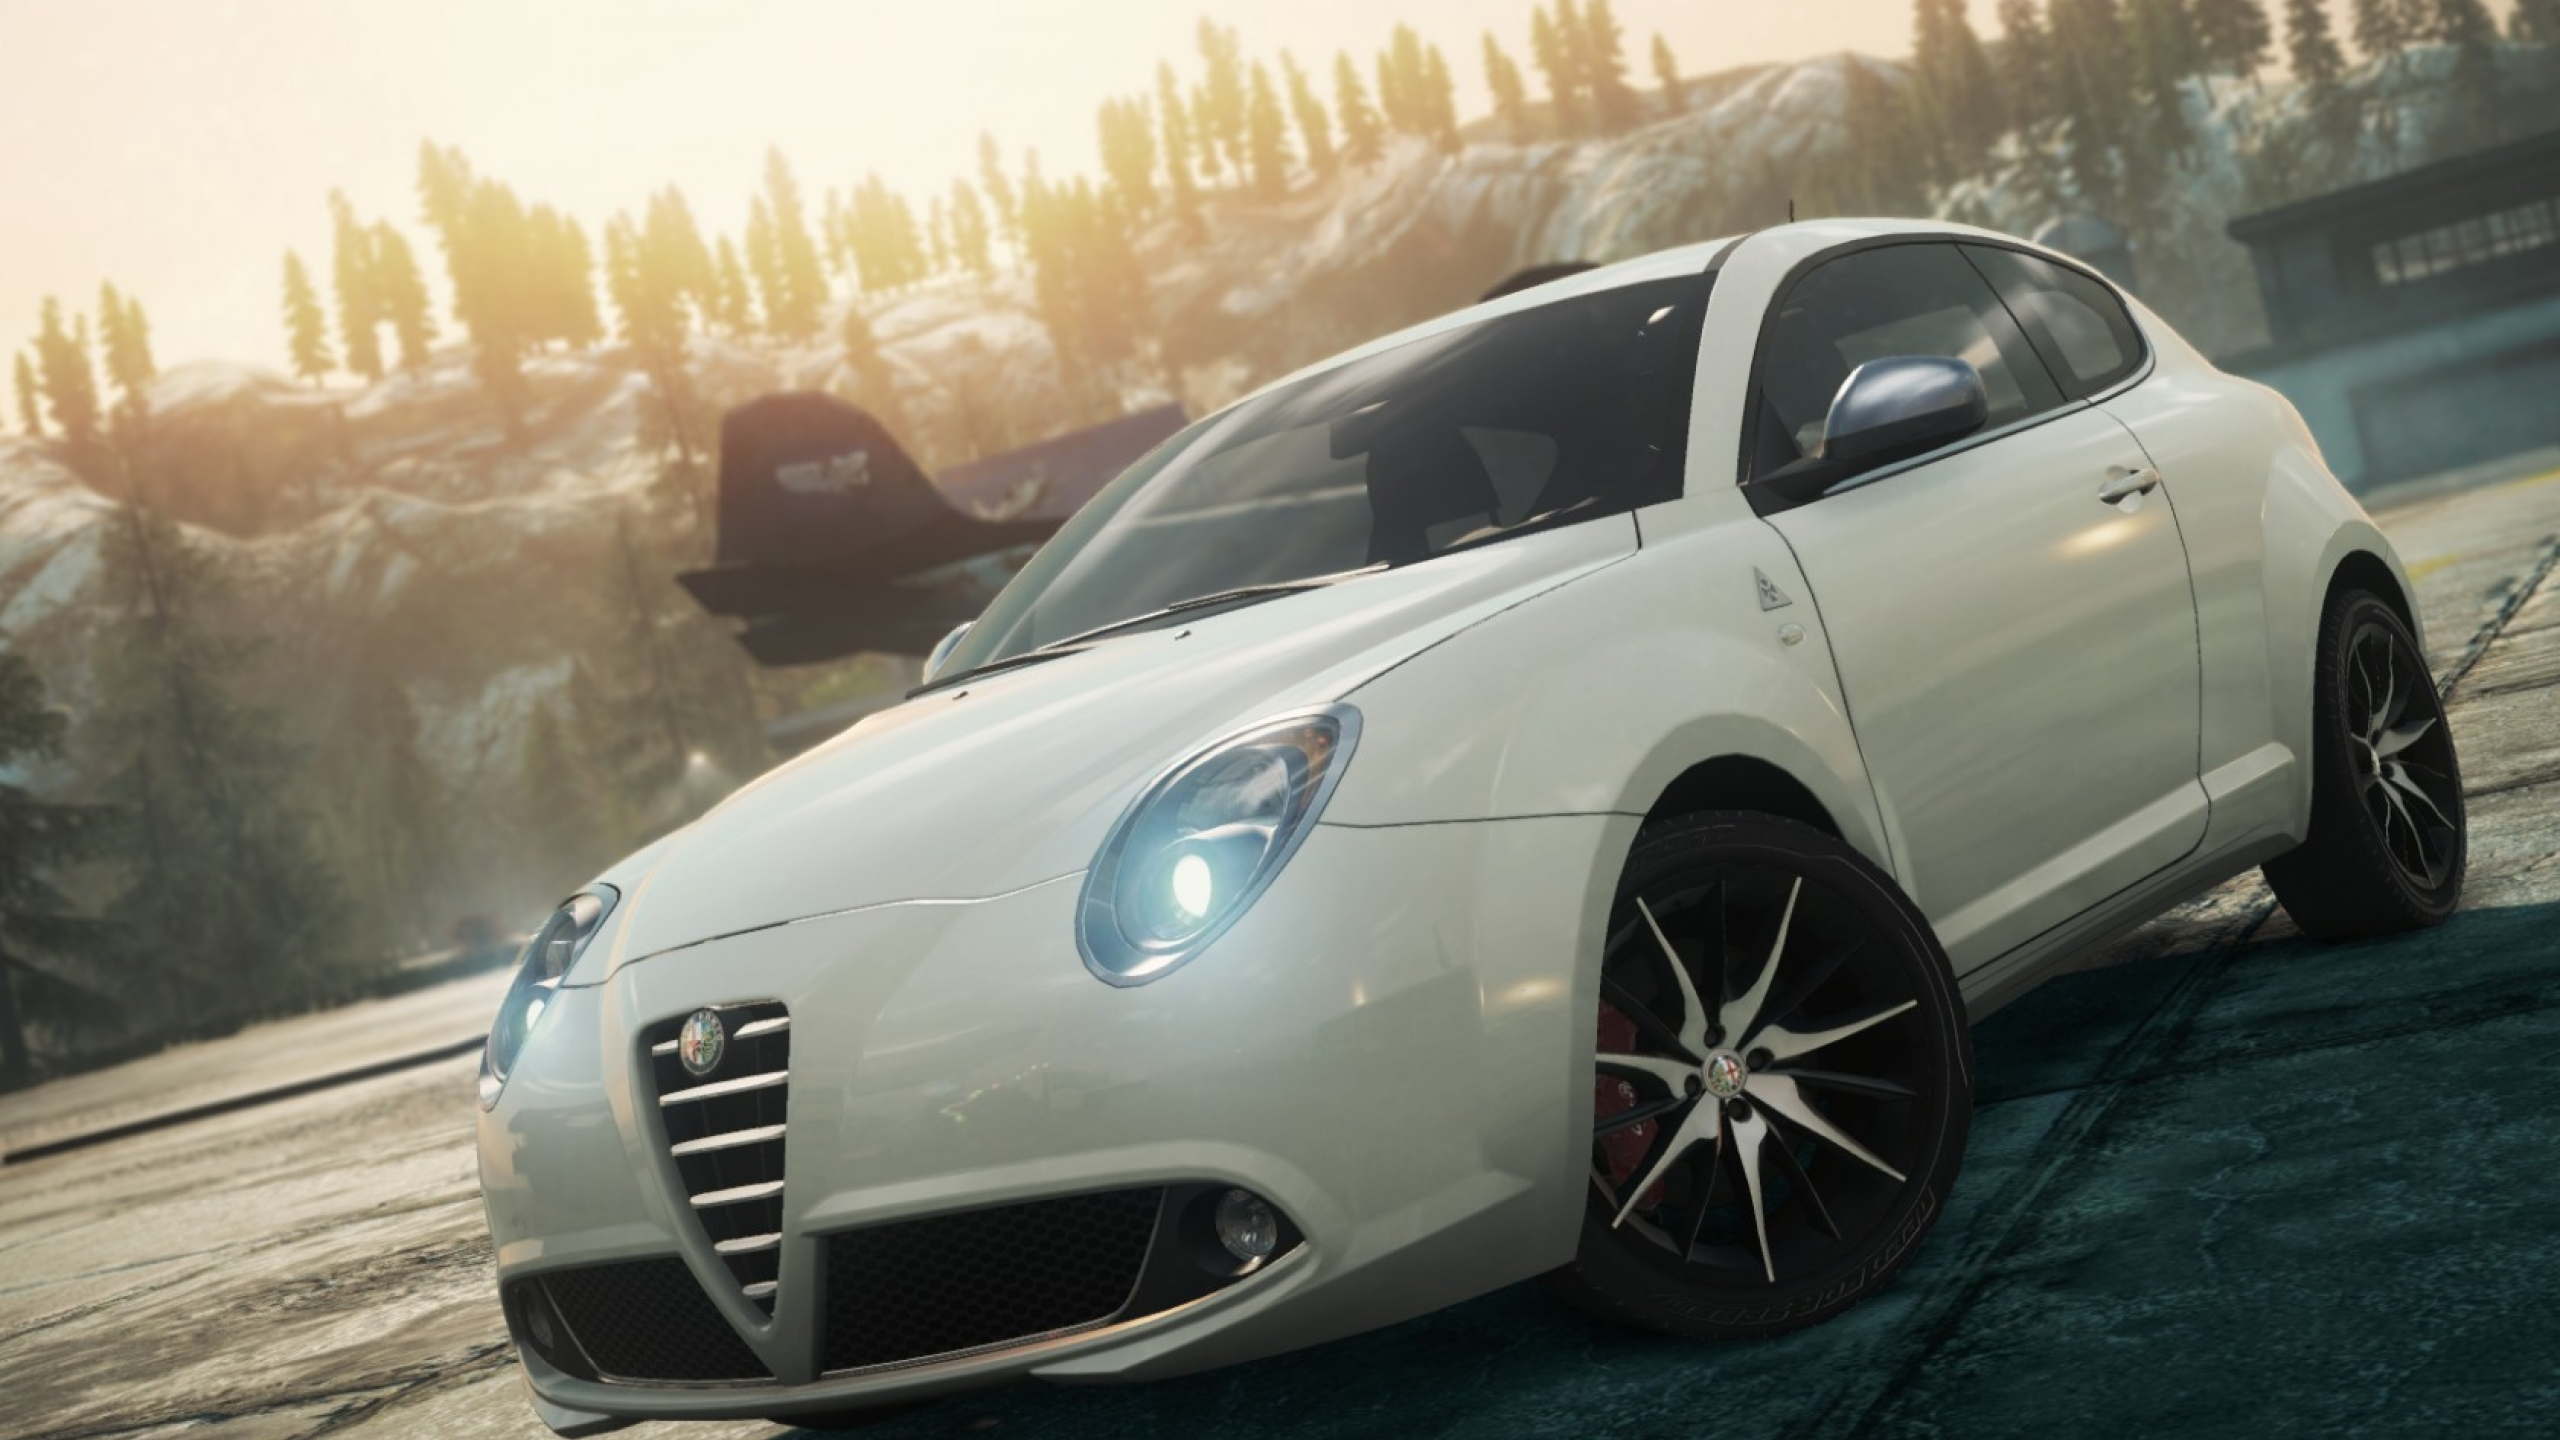 2560x1440 Need For Speed Most Wanted 2 Need For Speed Alfa Romeo